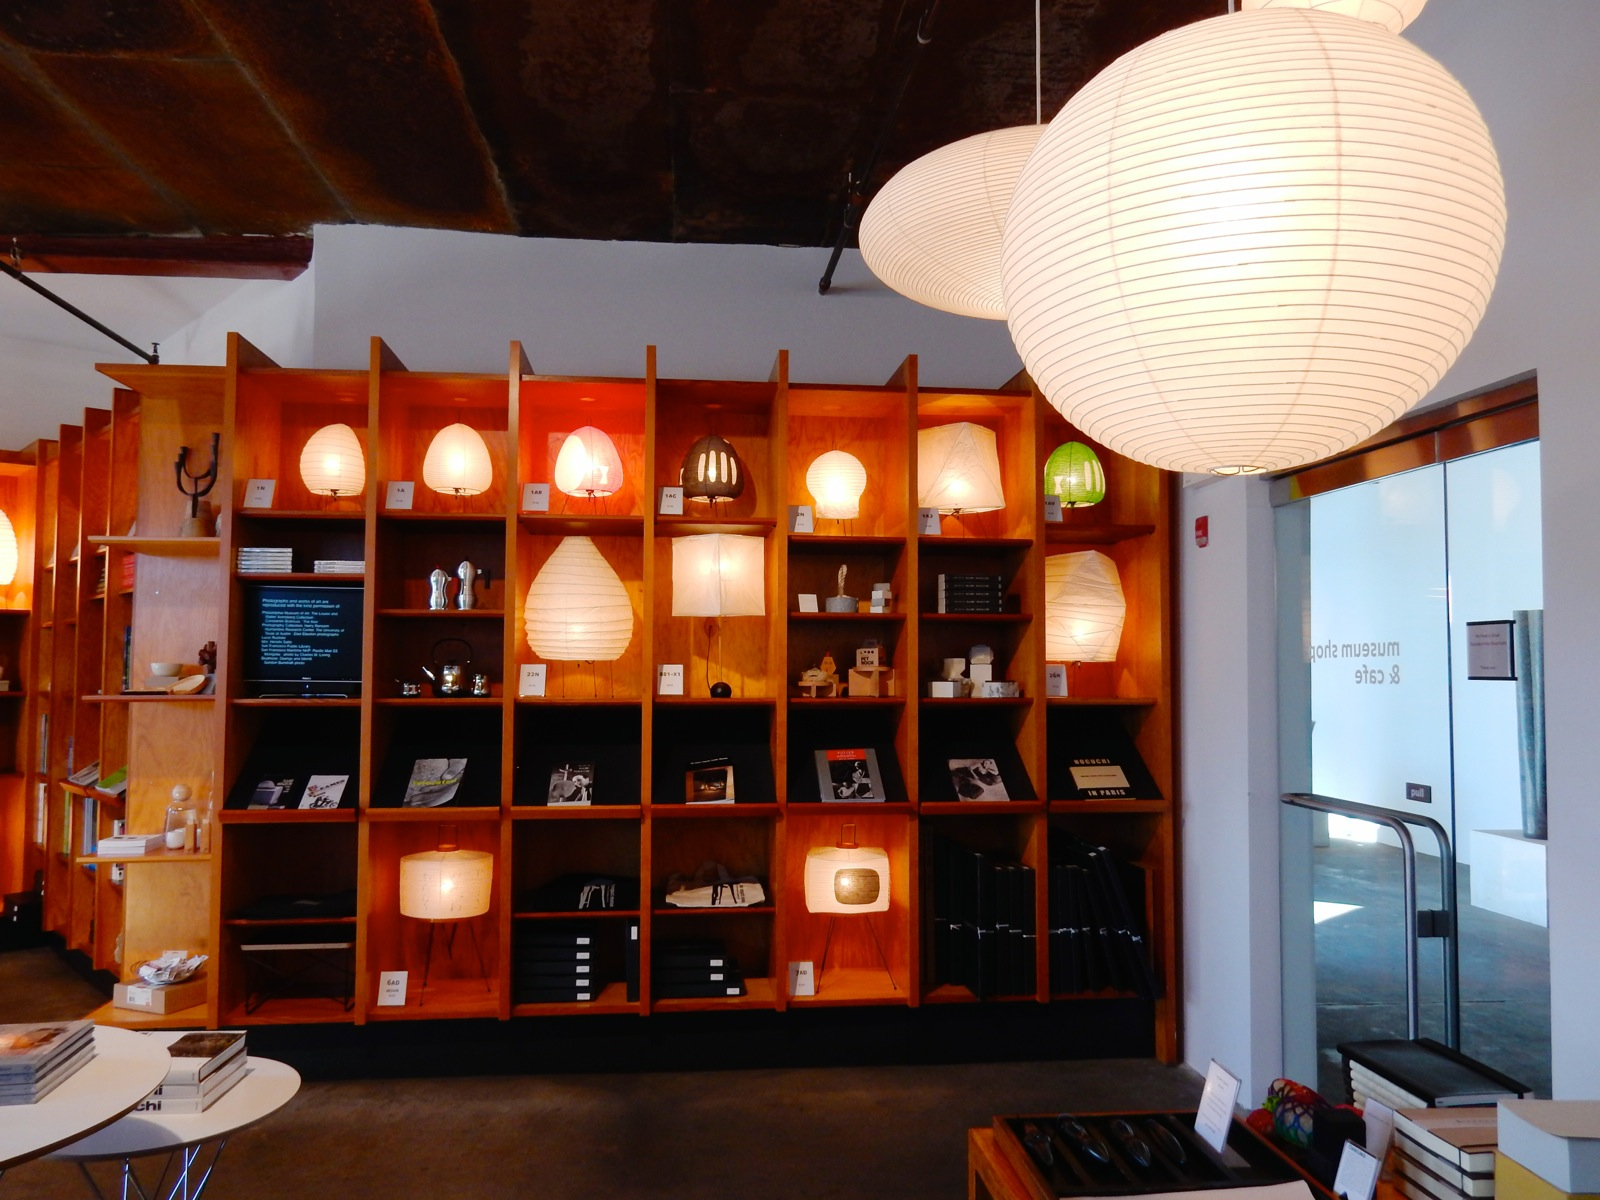 Furniture stores in long island ny - Noguchi Museum Shop Long Island